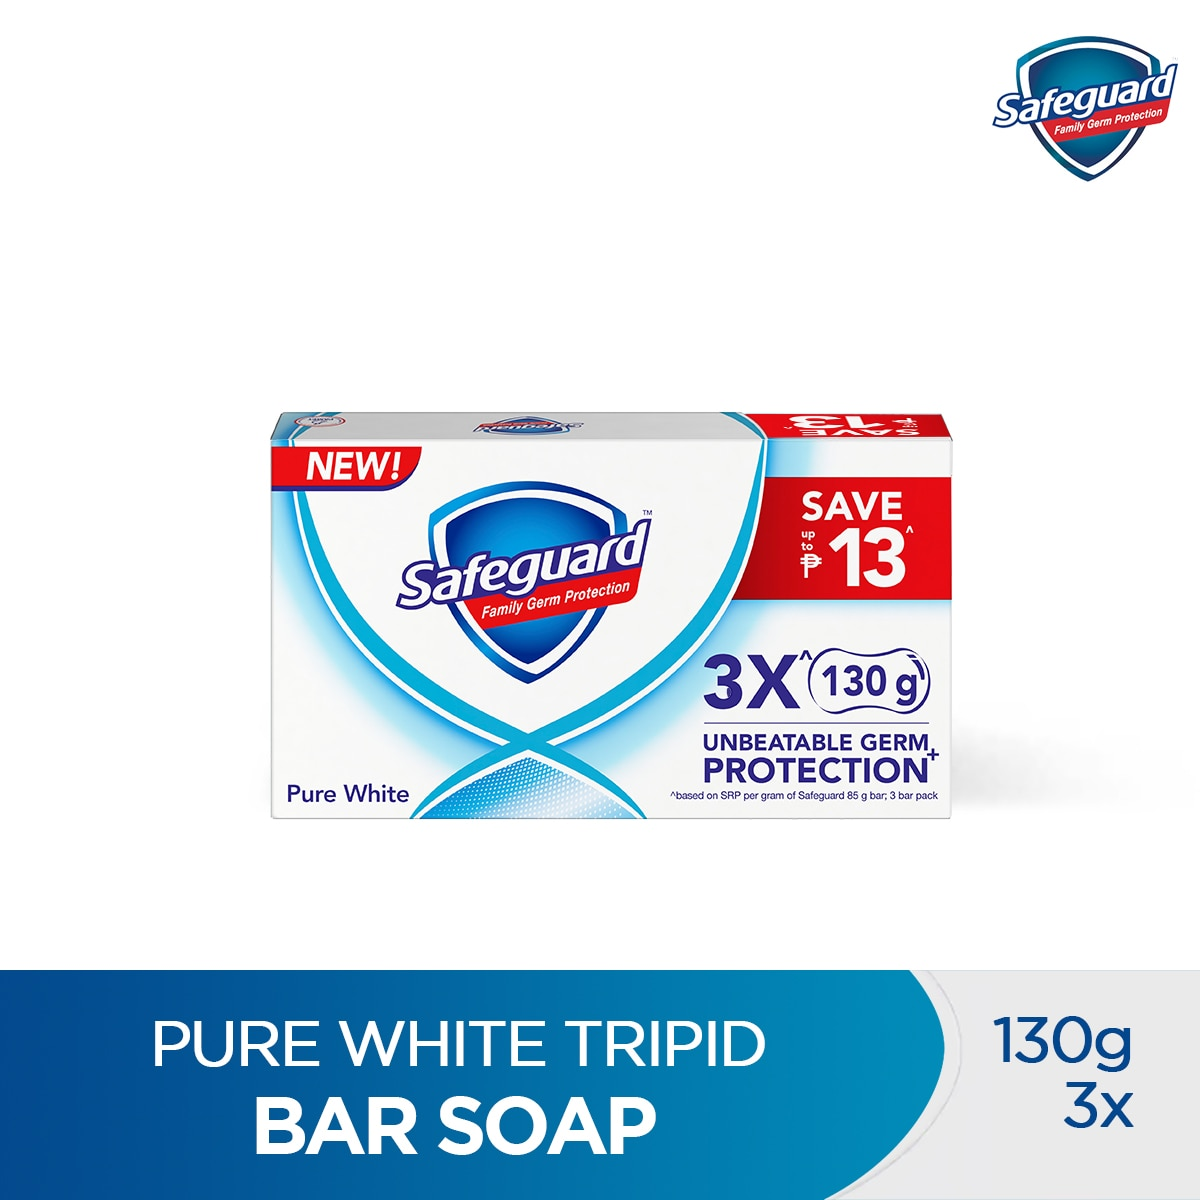 SAFEGUARDPure White Tripid Bar Soap 130g,Bar SoapBest Selling Products